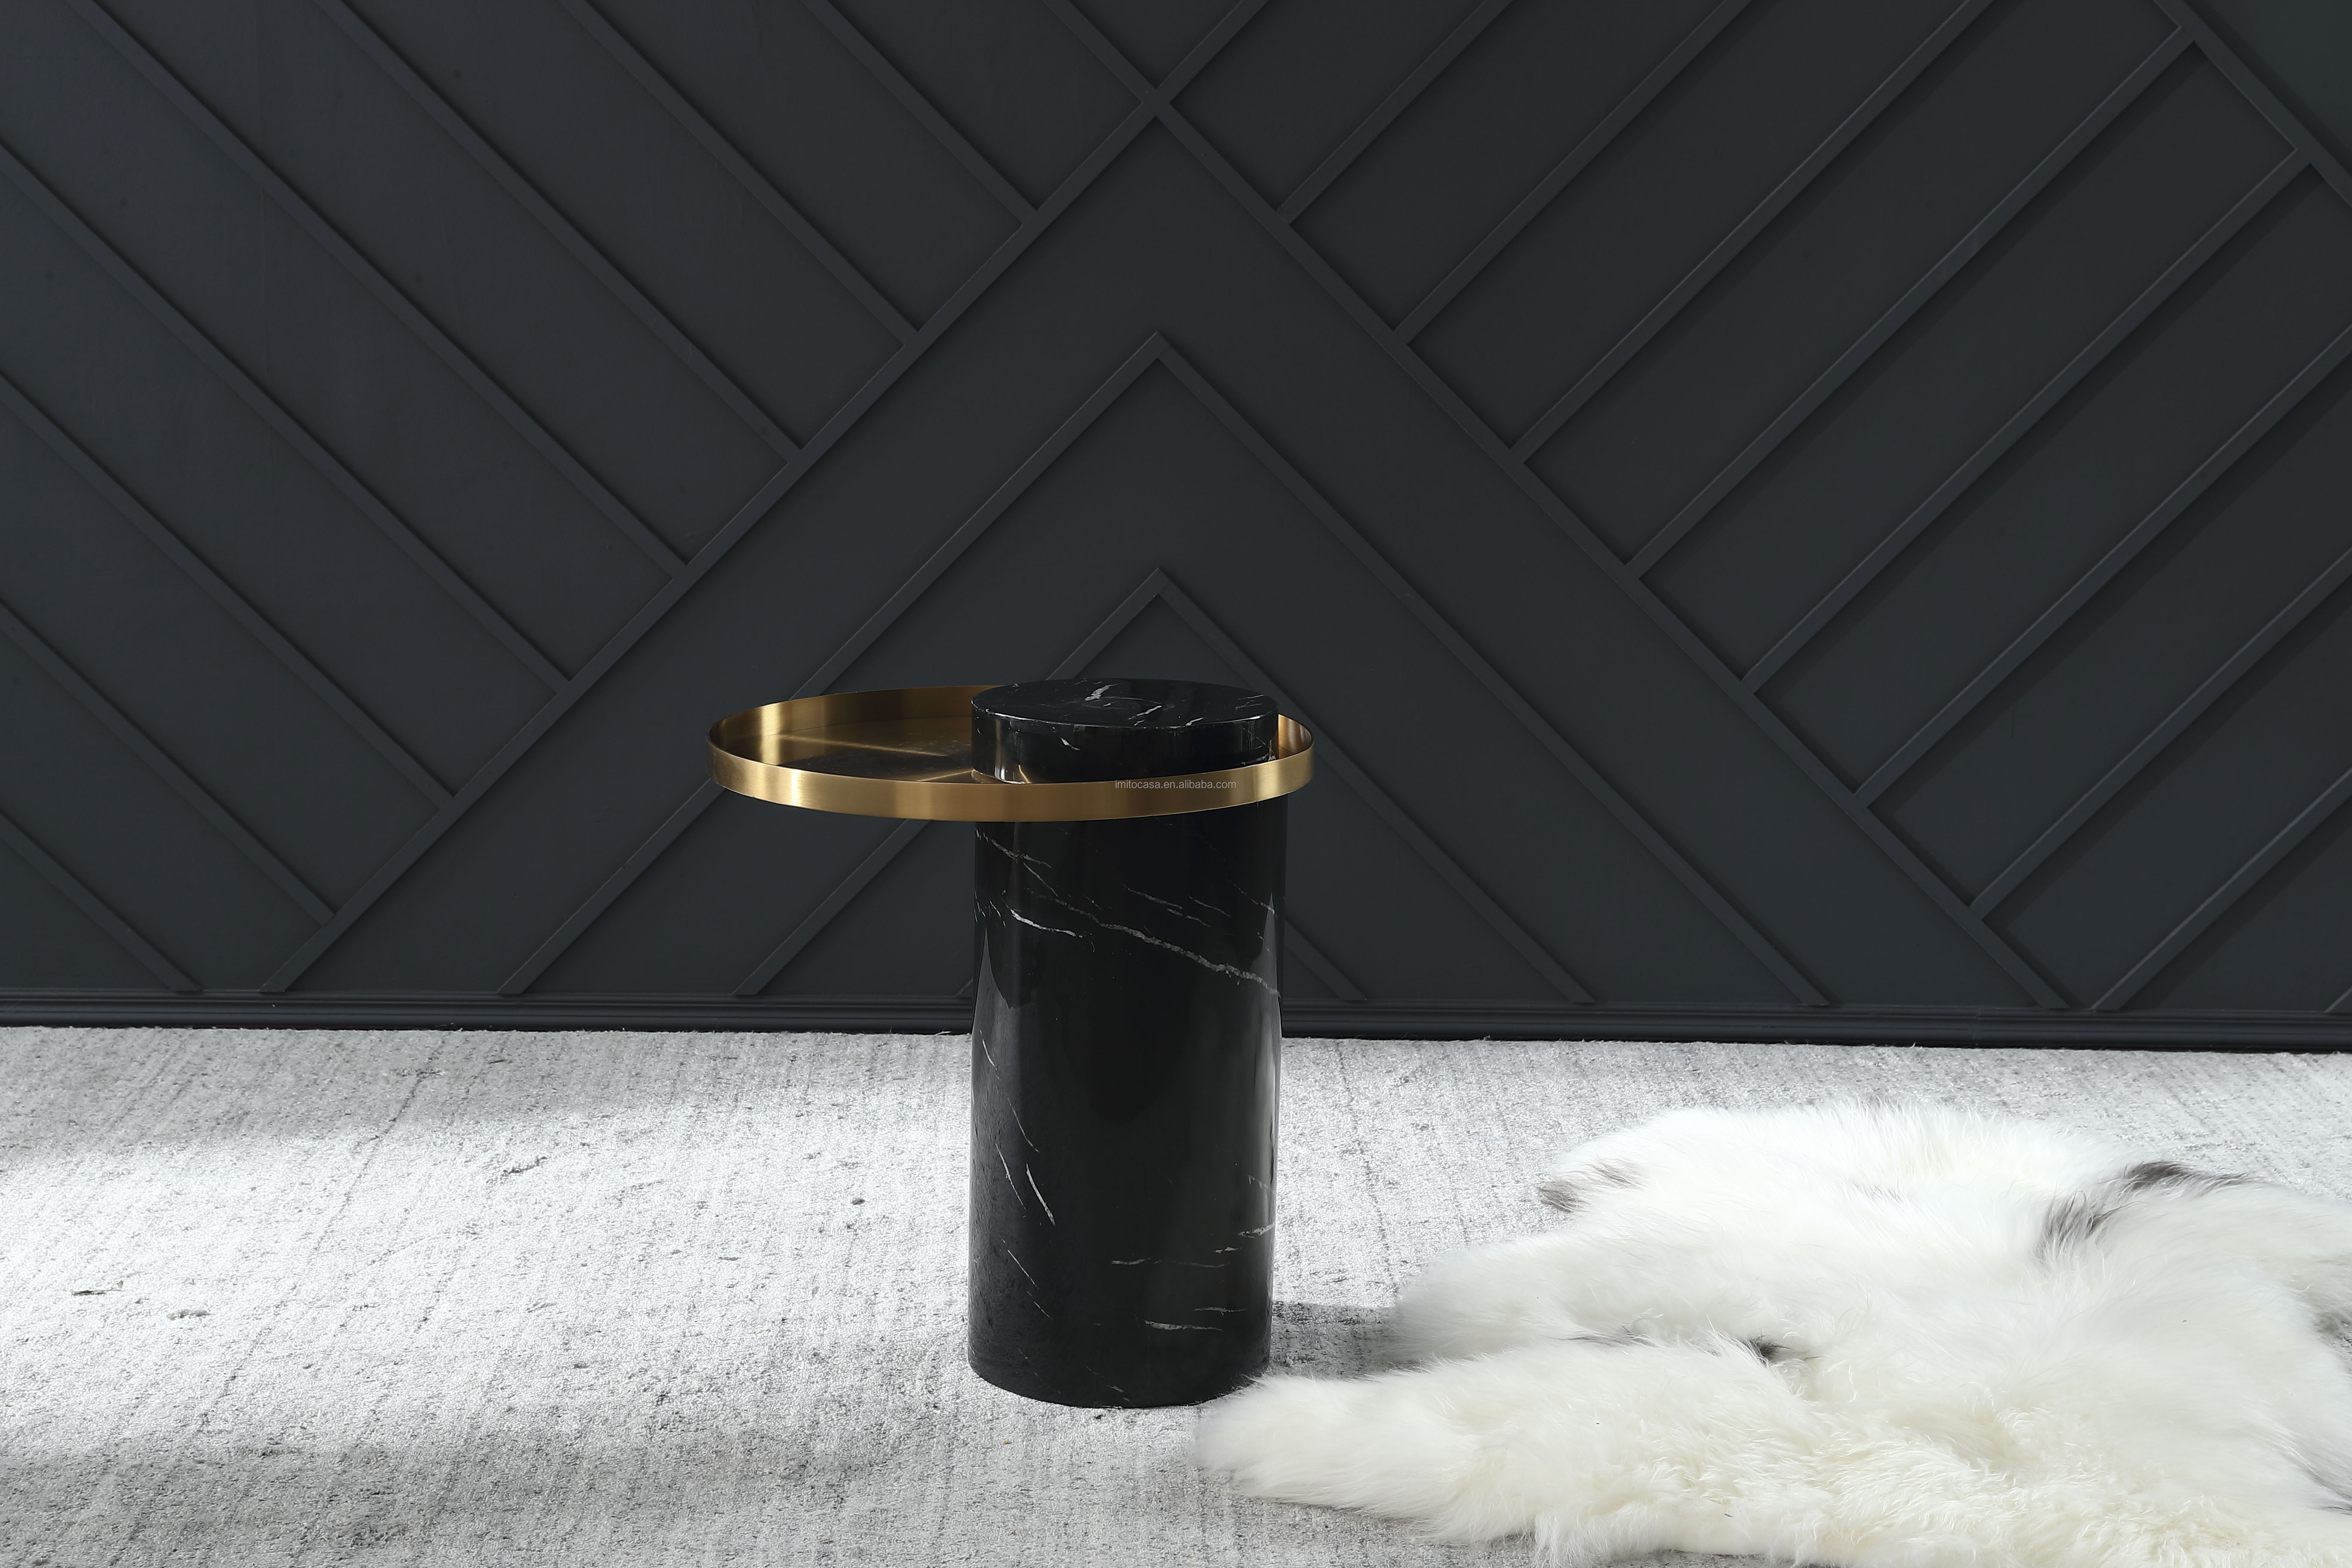 New Arrival Black Faux Marble Coffee Table Conical End Table/ American Modern Living Room Furniture Side Table